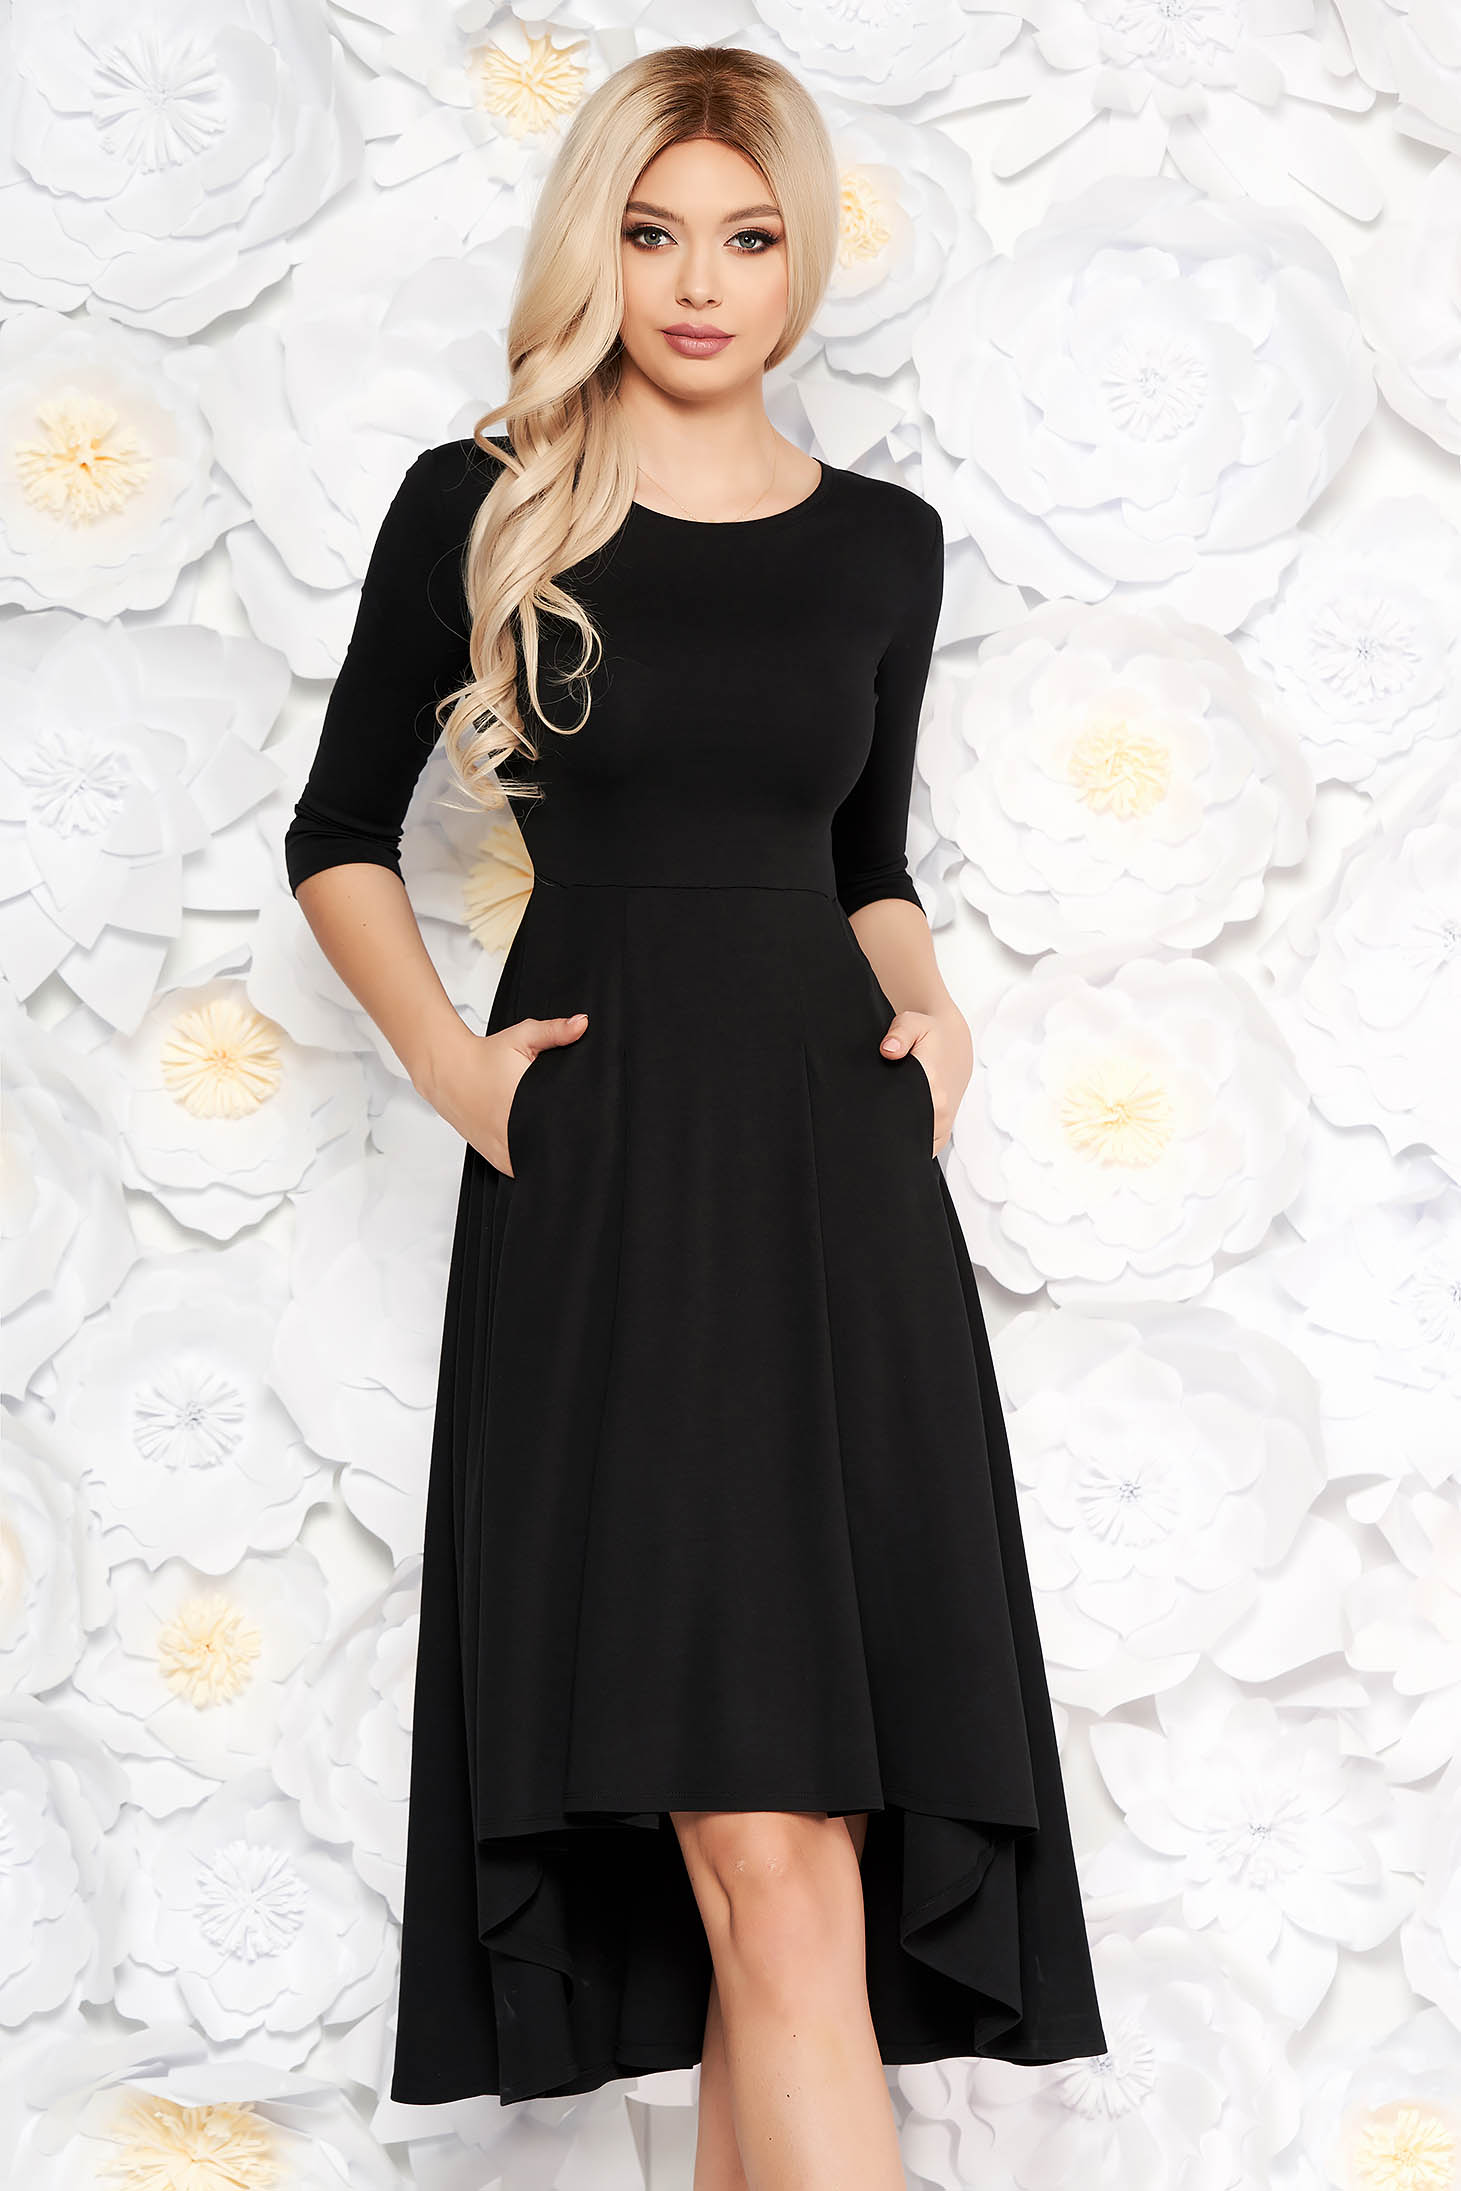 Black asymmetrical office dress slightly elastic fabric with 3/4 sleeves